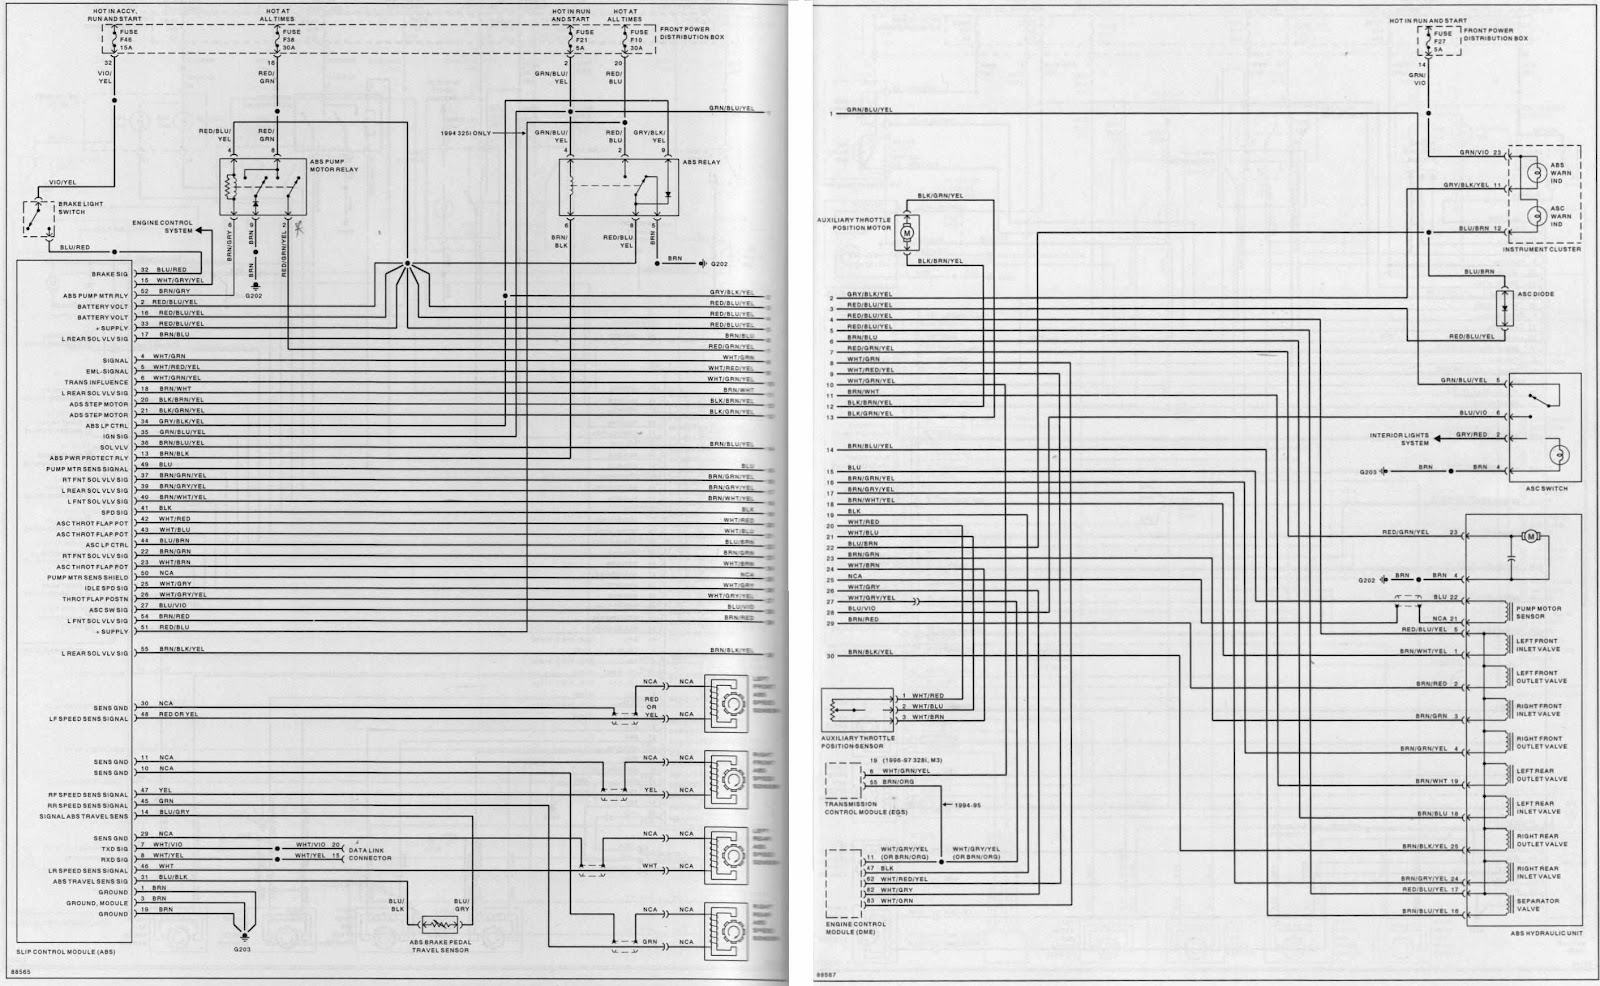 Comfortable Bmw 330xi Tcm Wiring Diagram Gallery - Electrical and ...